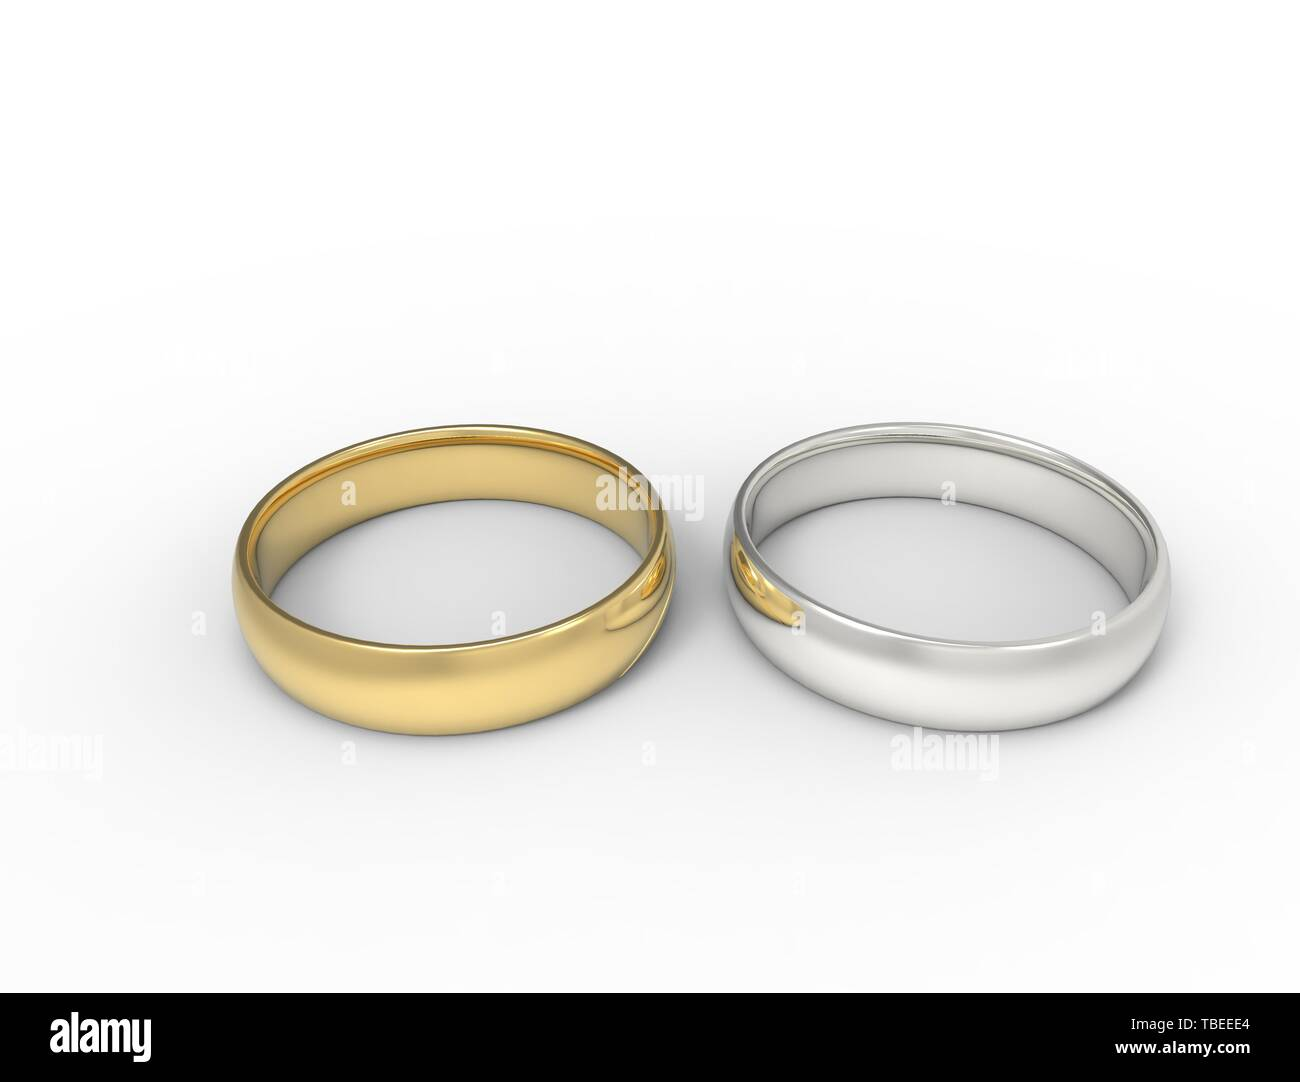 3d Rendering Of Two Rings Gold And Silver Isolated In White